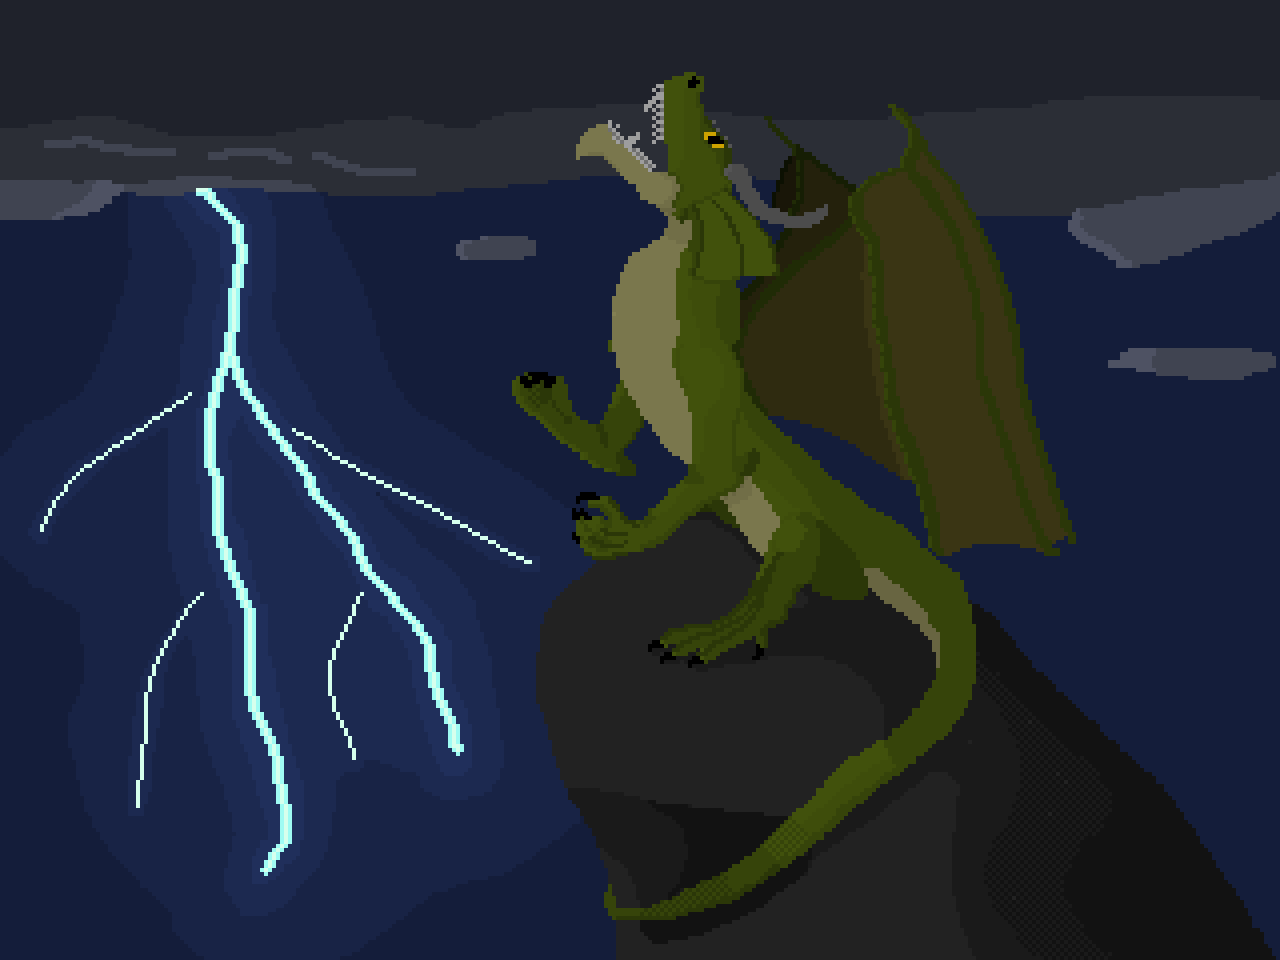 Green Dragon on a lonely high rock